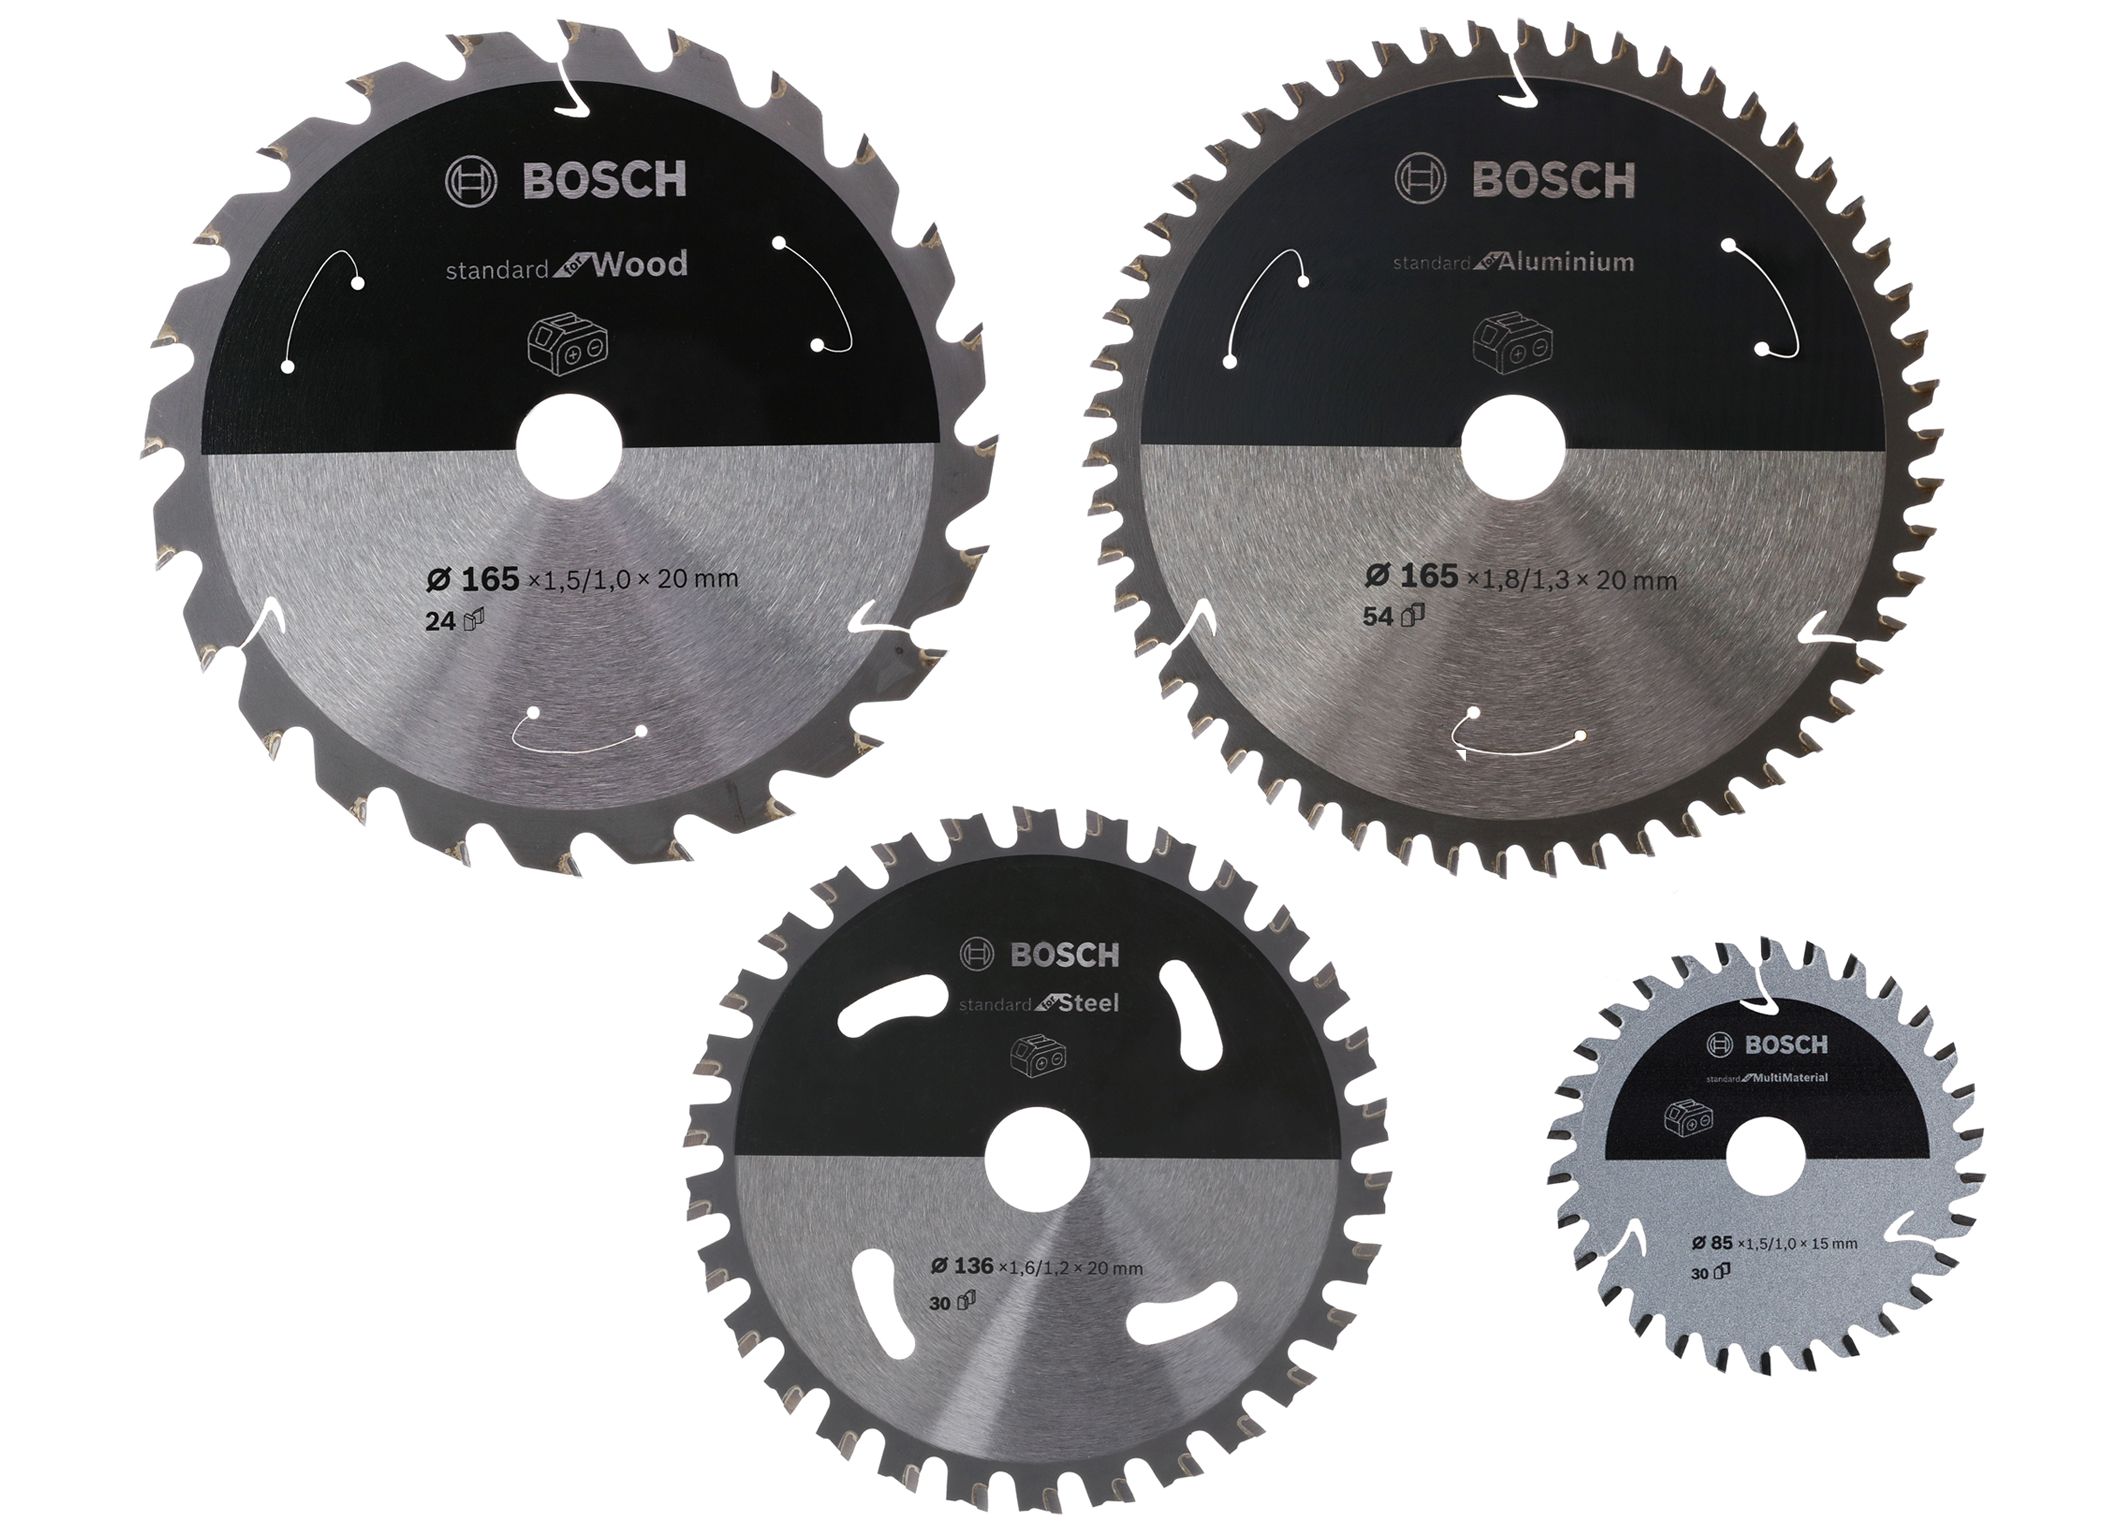 "Clean cuts in common materials, maximum runtime for cordless saws: ""Standard for"" circular saw blades"